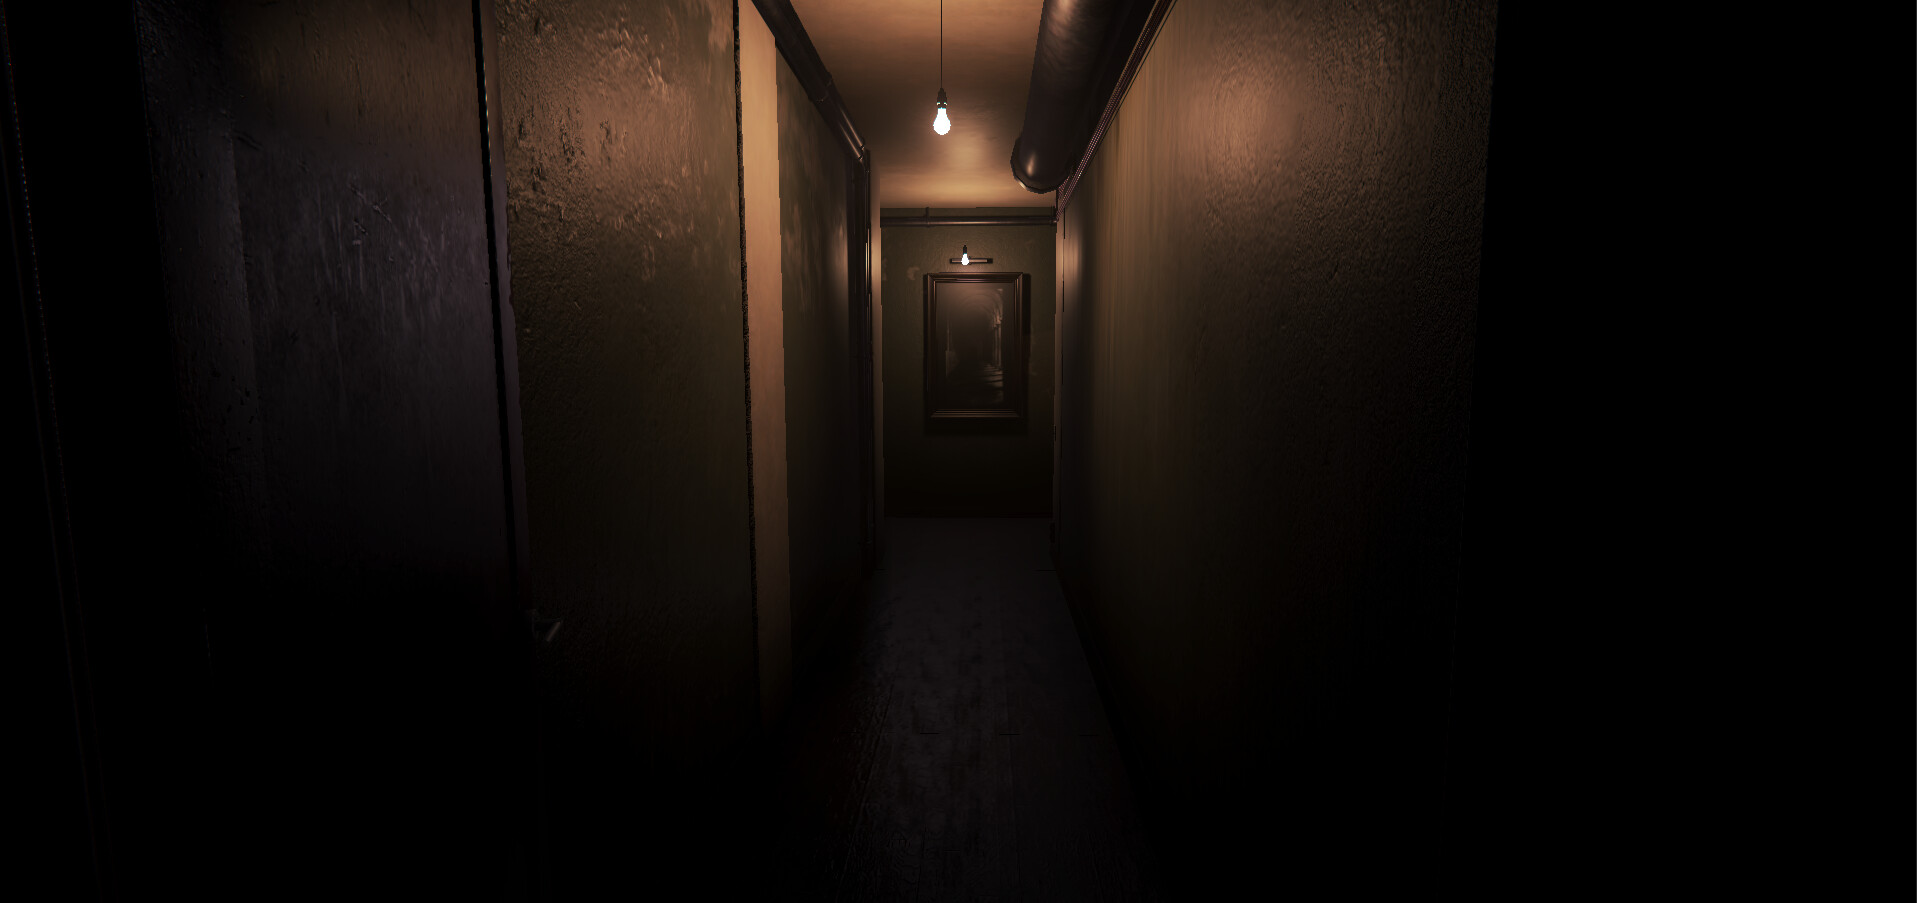 This is the lighting you see when you enter the corridor for the first time.